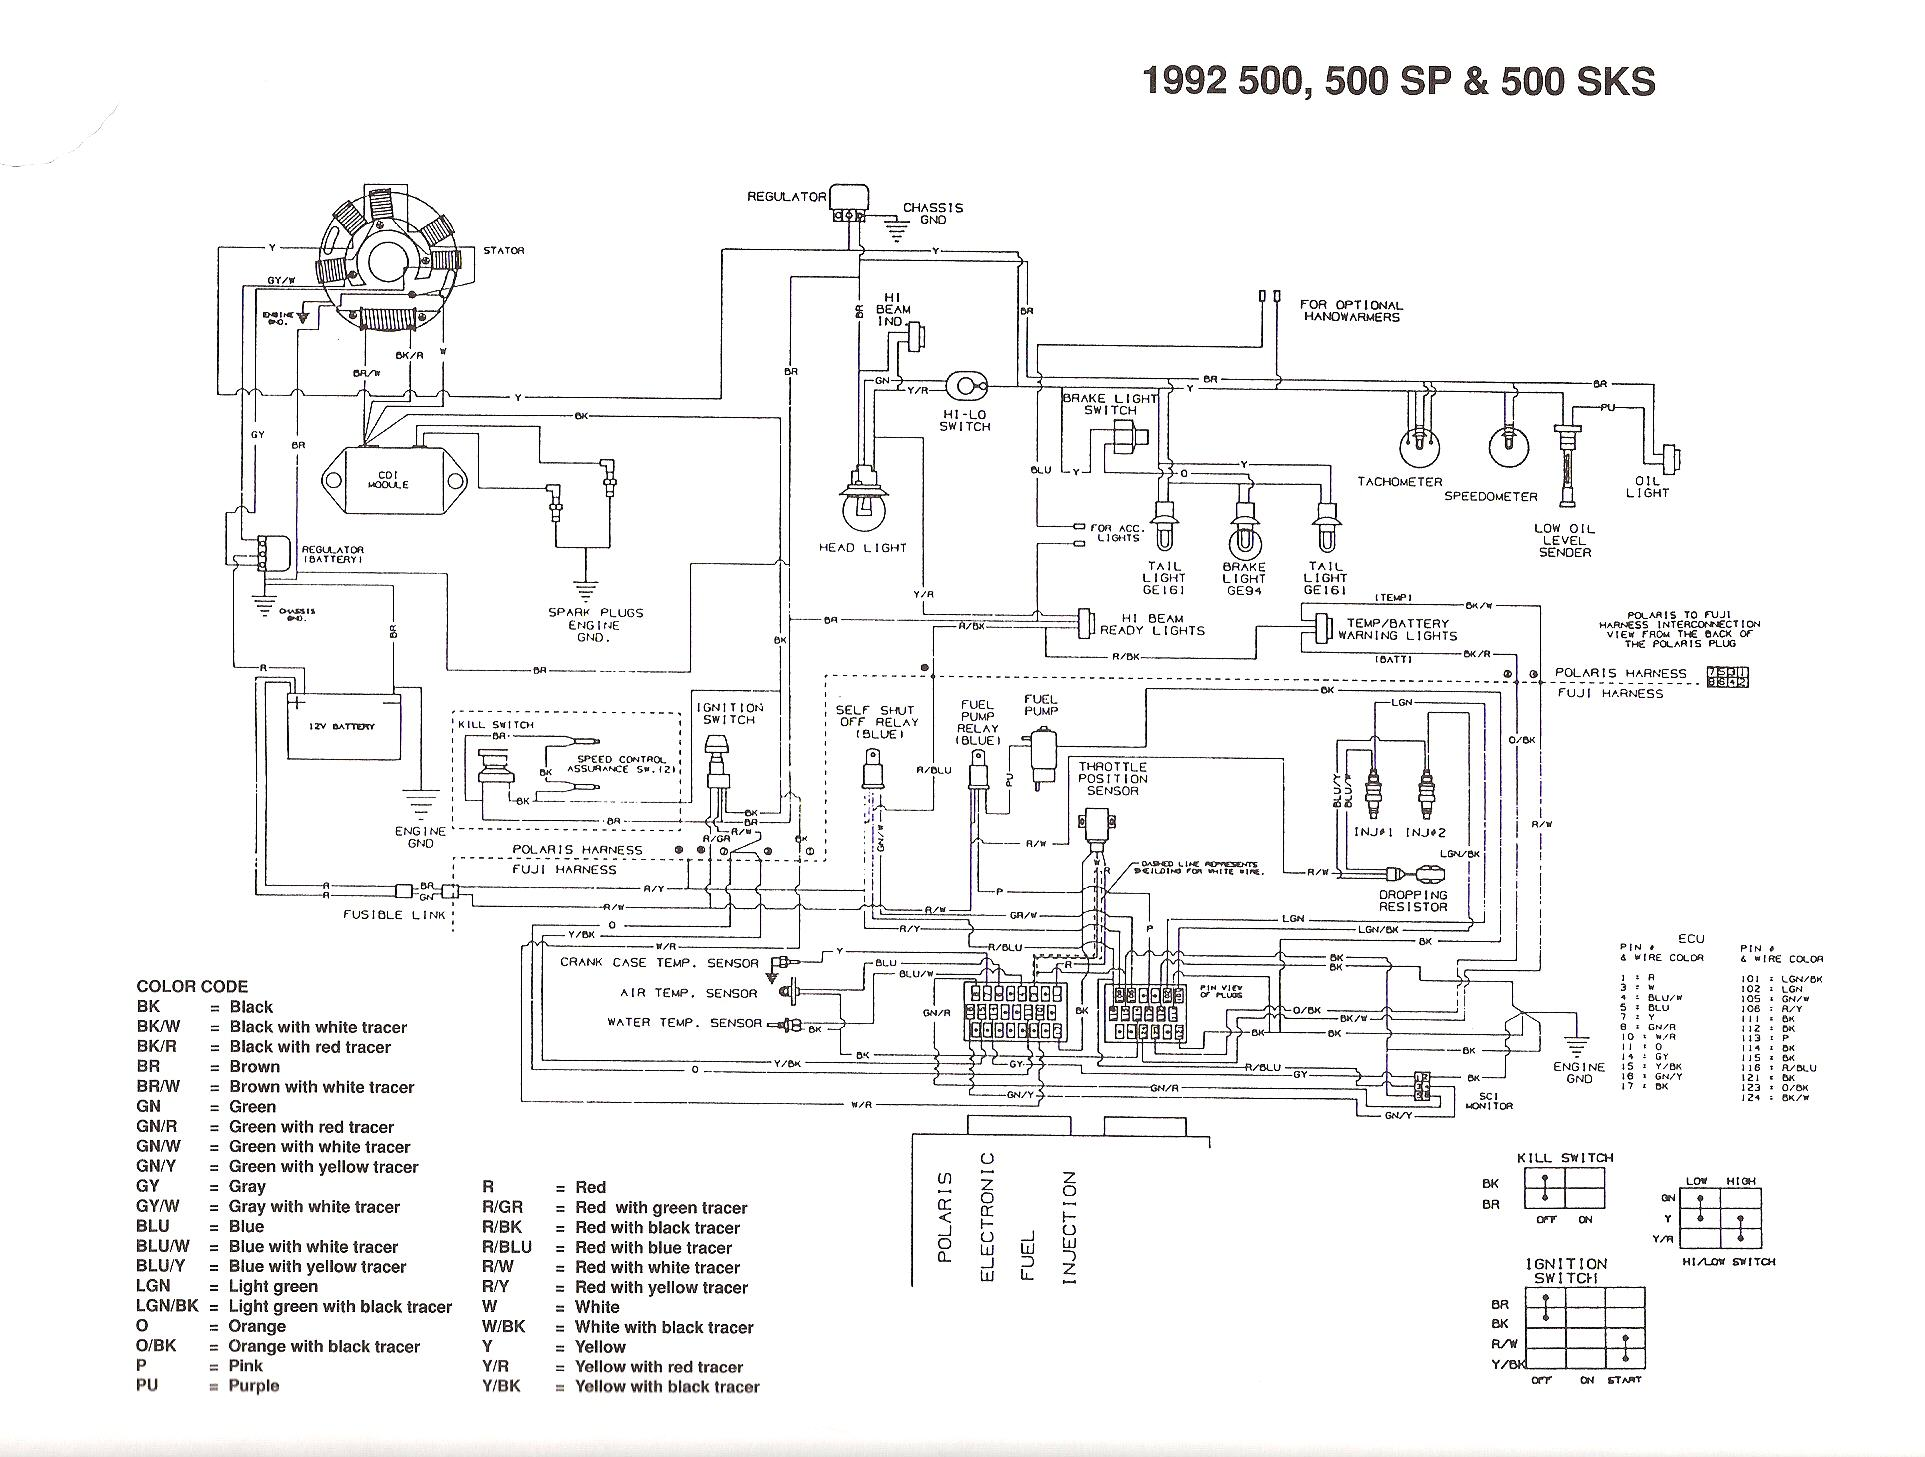 hight resolution of polaris 440 wiring diagram wiring diagrams volvo wiring schematic polaris indy 500 wiring diagram wiring library